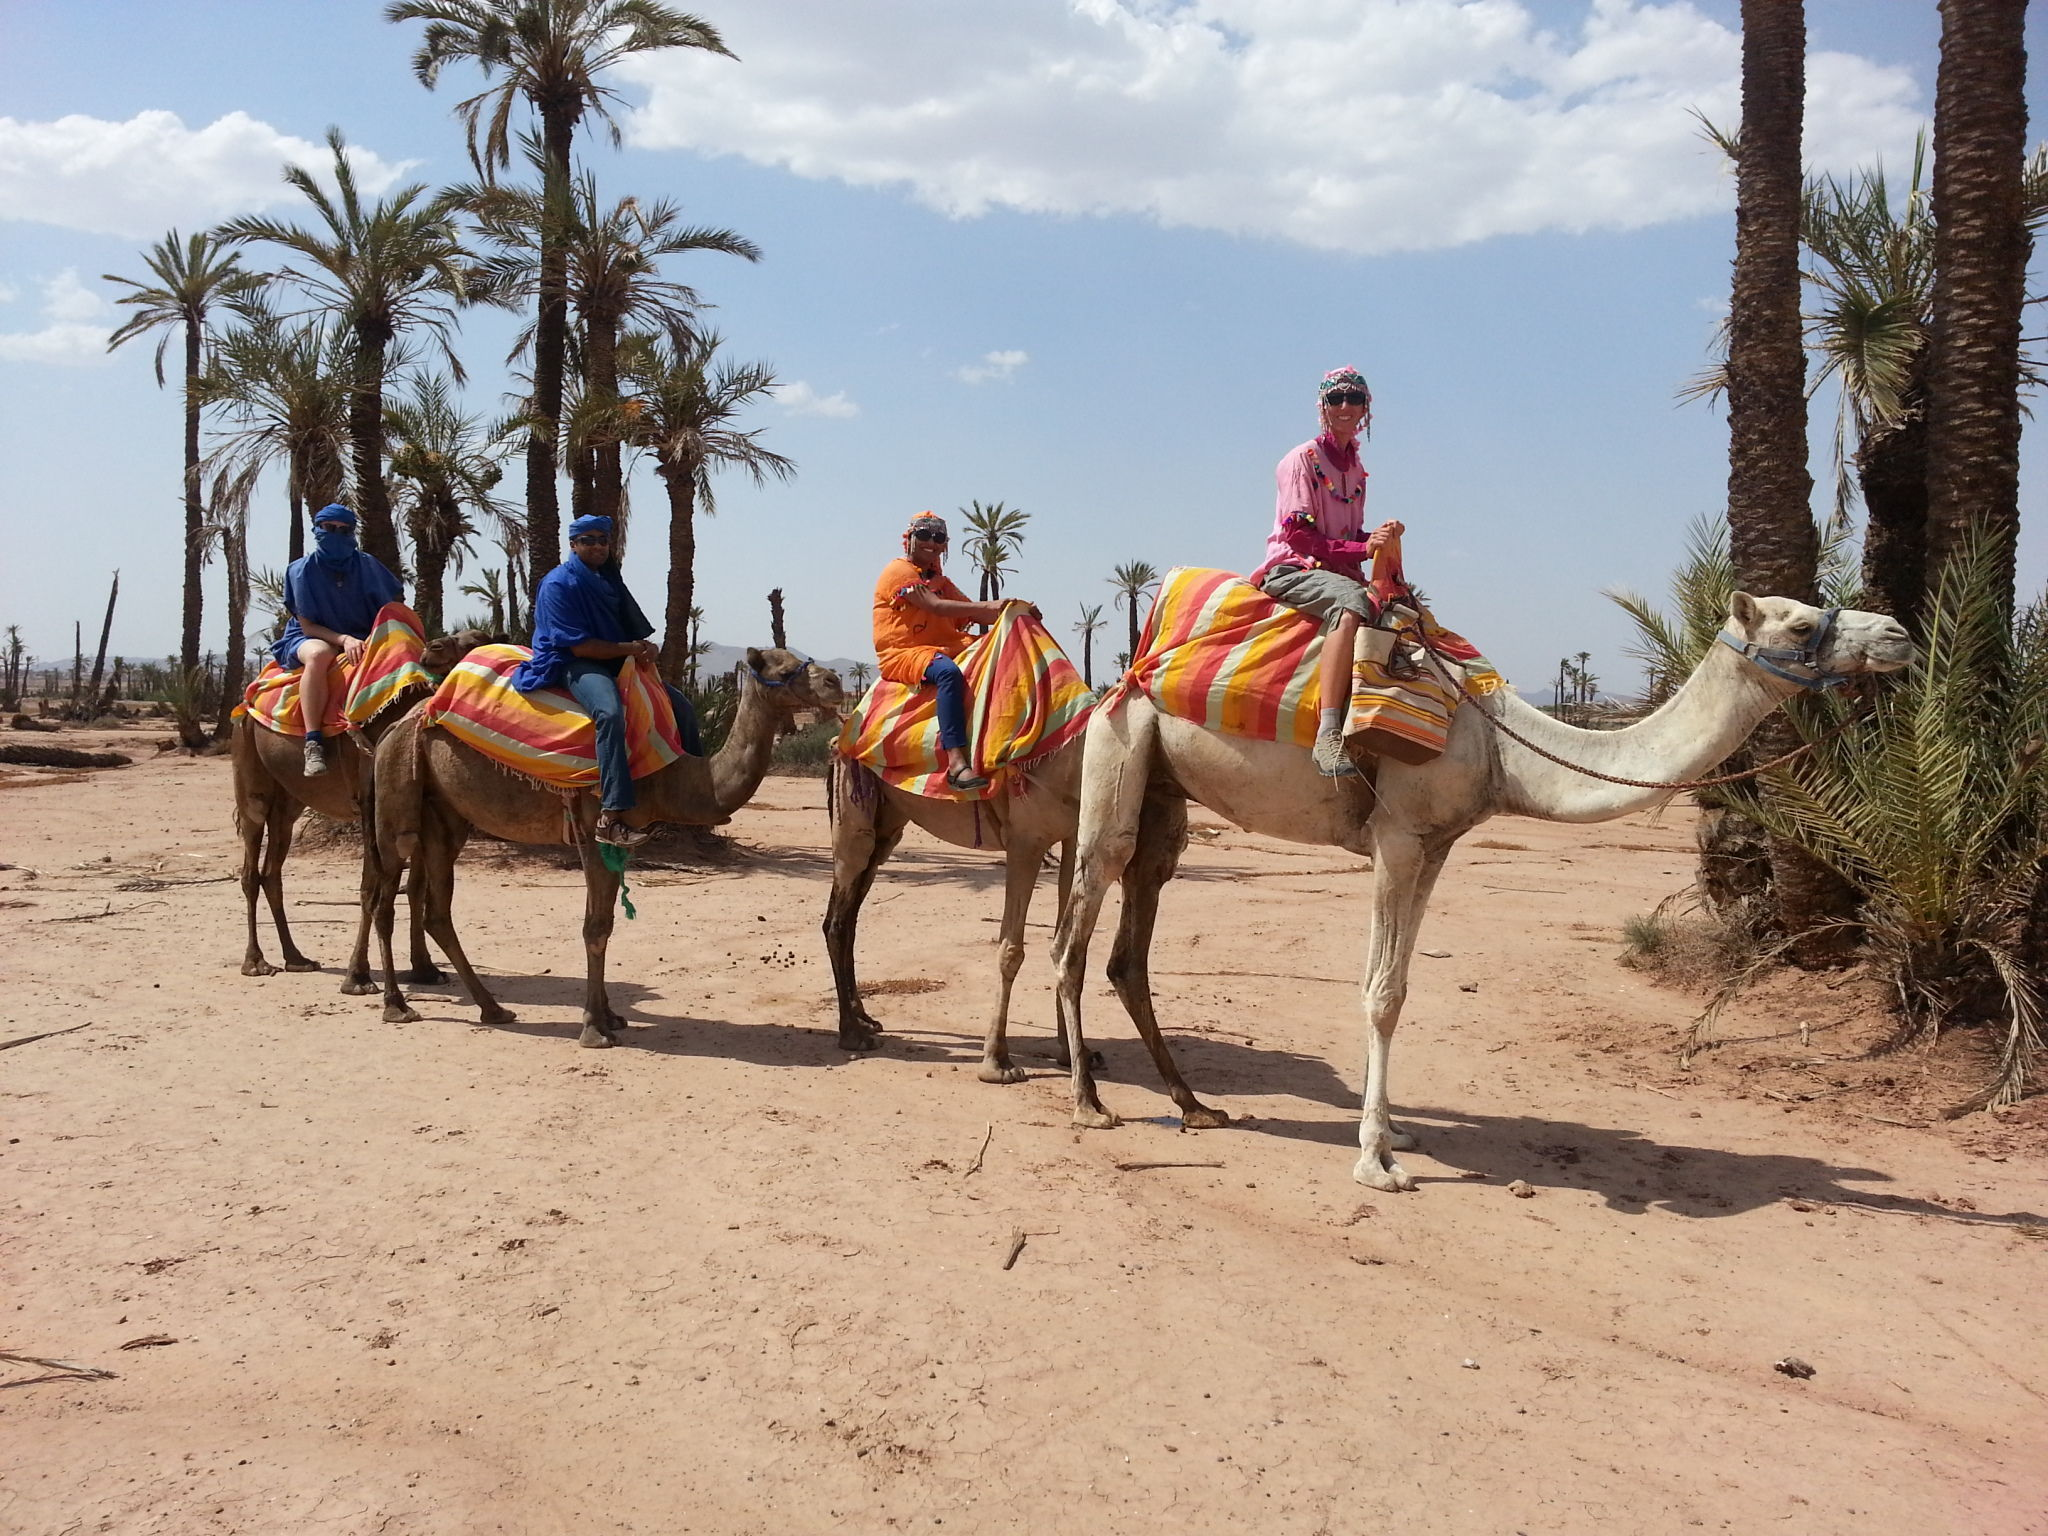 Guided Family Tours and Top Adventure Tour Operators